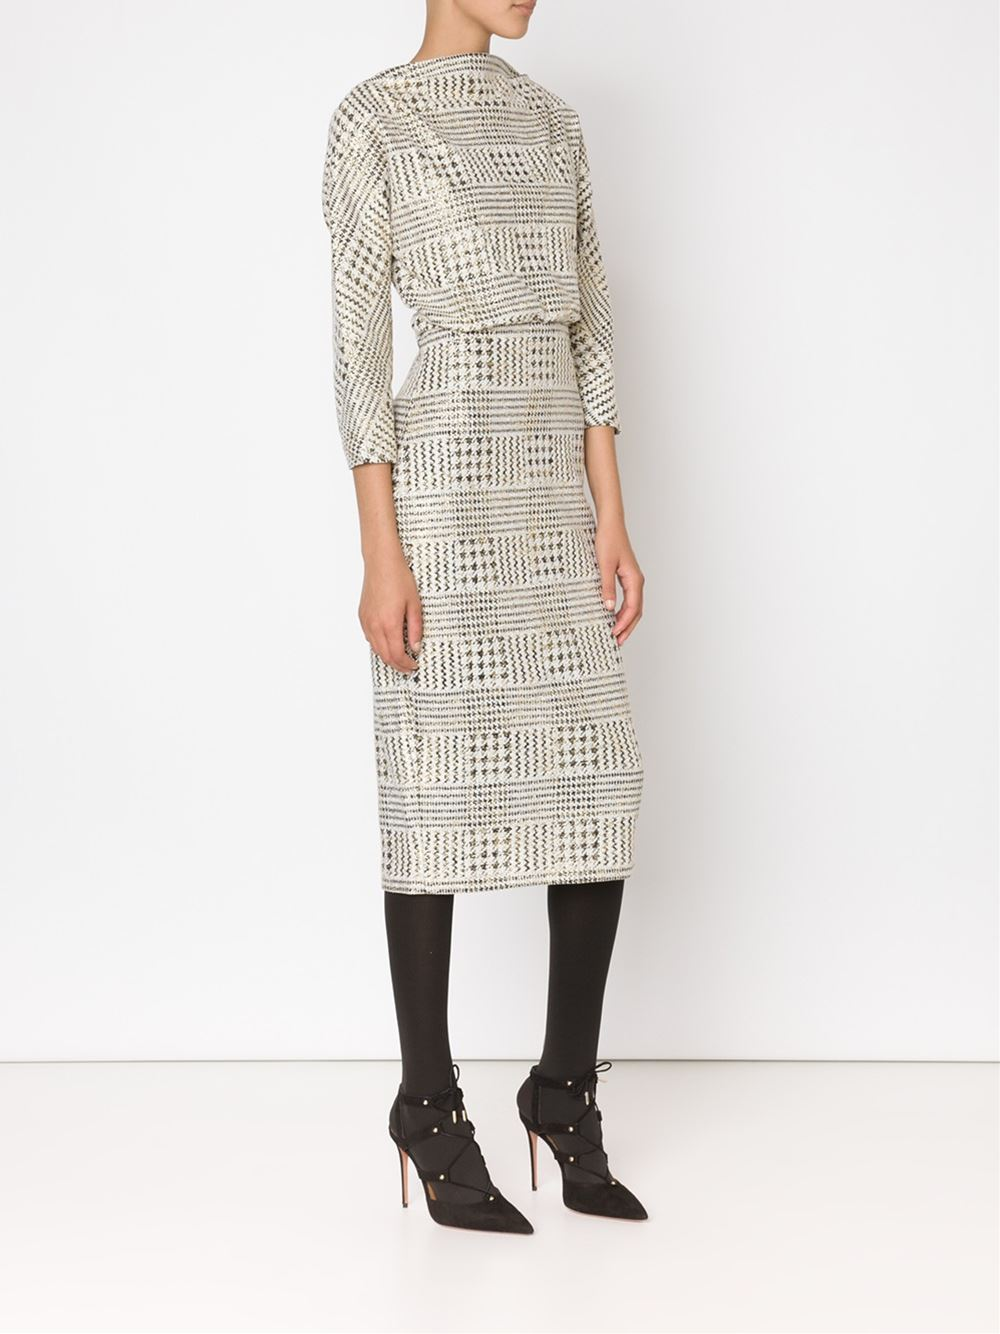 BADGLEY MISCHKA Checked Fitted Dress $440.00